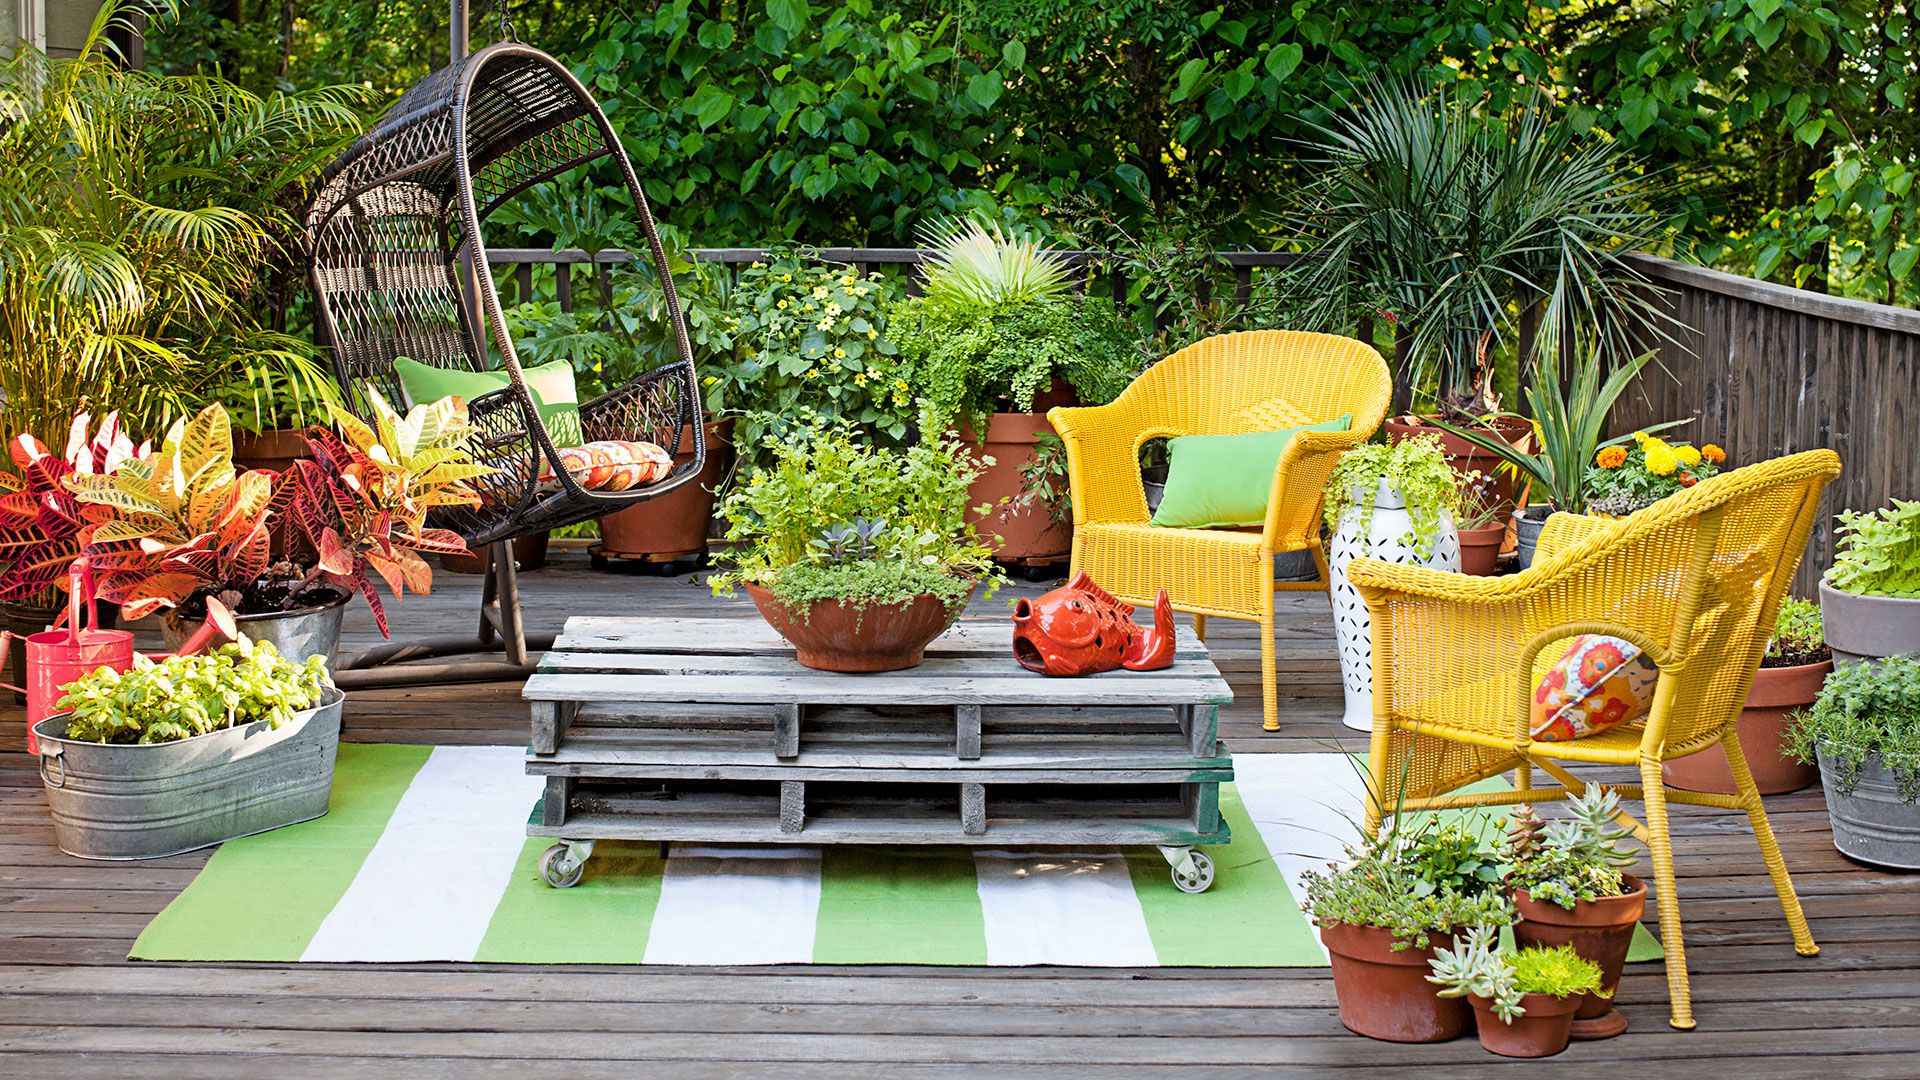 11 Some Of The Coolest Ways How To Makeover Decorating Backyard within 13 Smart Ways How to Build Backyard Decorating Ideas For Parties